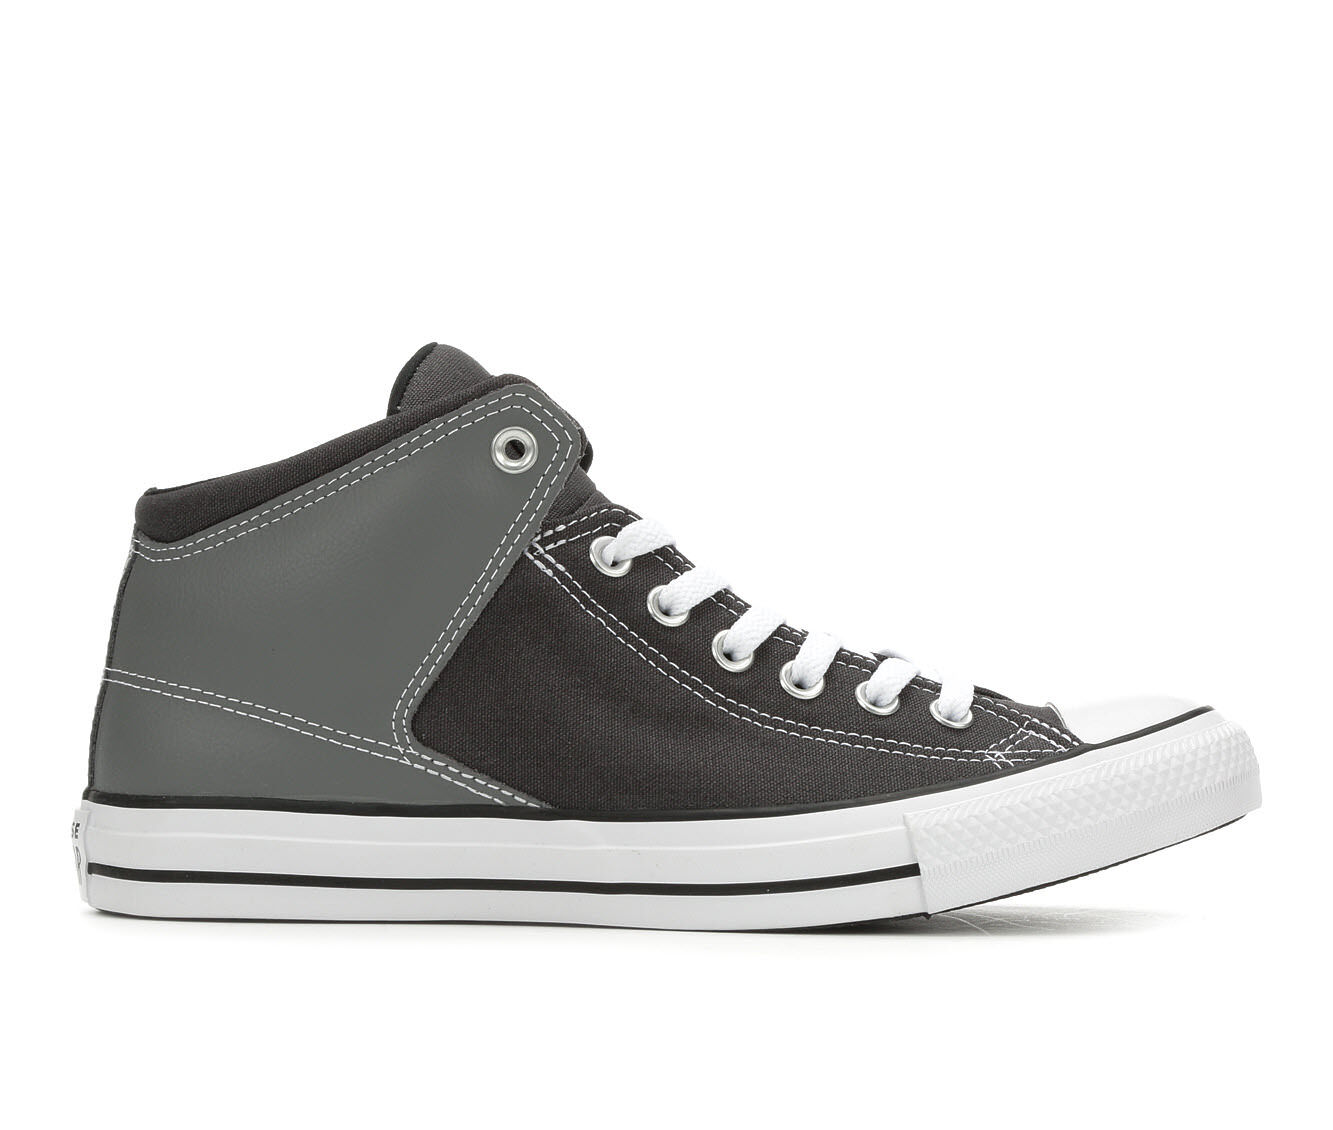 81d1b6334330e ... promo code for adults converse chuck taylor all star high street hi  sneakers f4dad a4aec